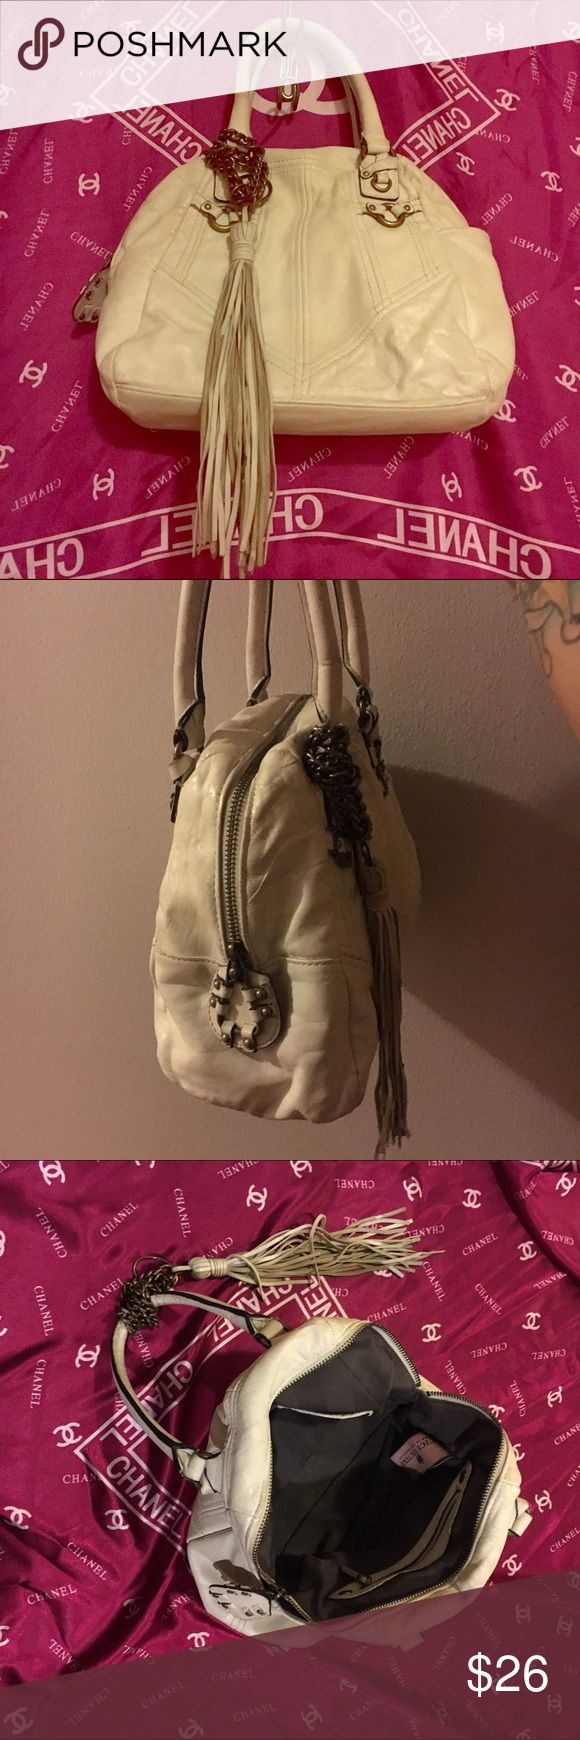 👛JUICY COUTURE off-white tassel handbag🌂 In great shape! Juicy C. Off white medium handbag! exterior has brass chain and large tassel. Grey inside, very well taken care of. Bought over a year ago, no smoke no pet home. Enjoy!!😃💟 Juicy Couture Bags Totes